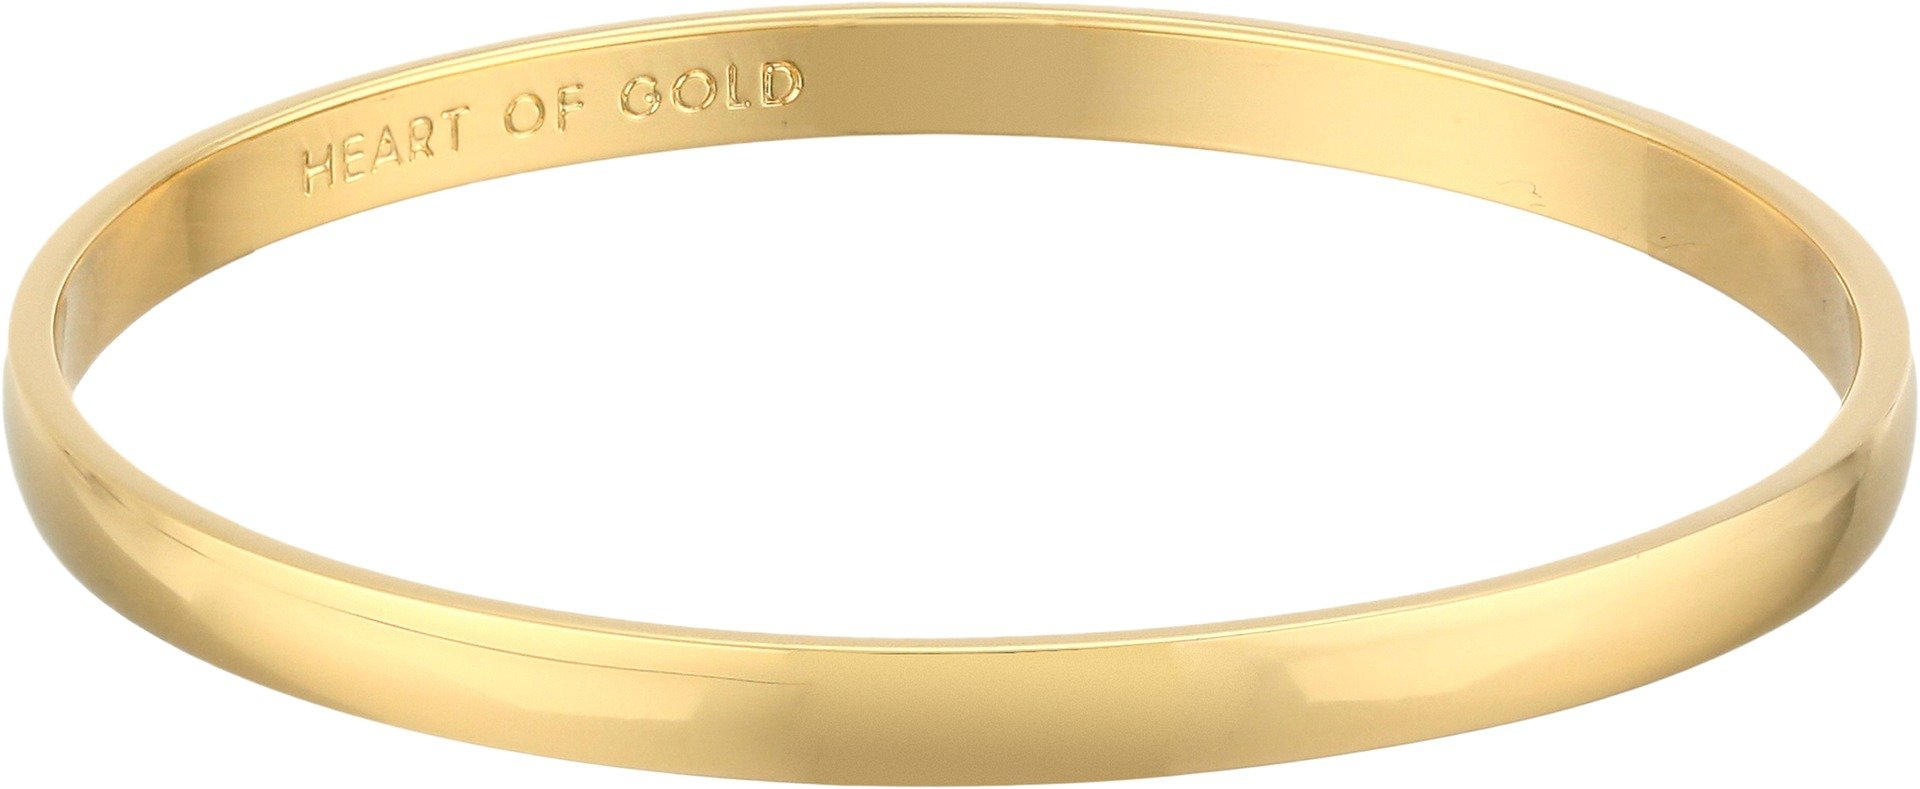 Kate-Spade-New-York-Womens-Idiom-Bangles-2-Heart-of-Gold